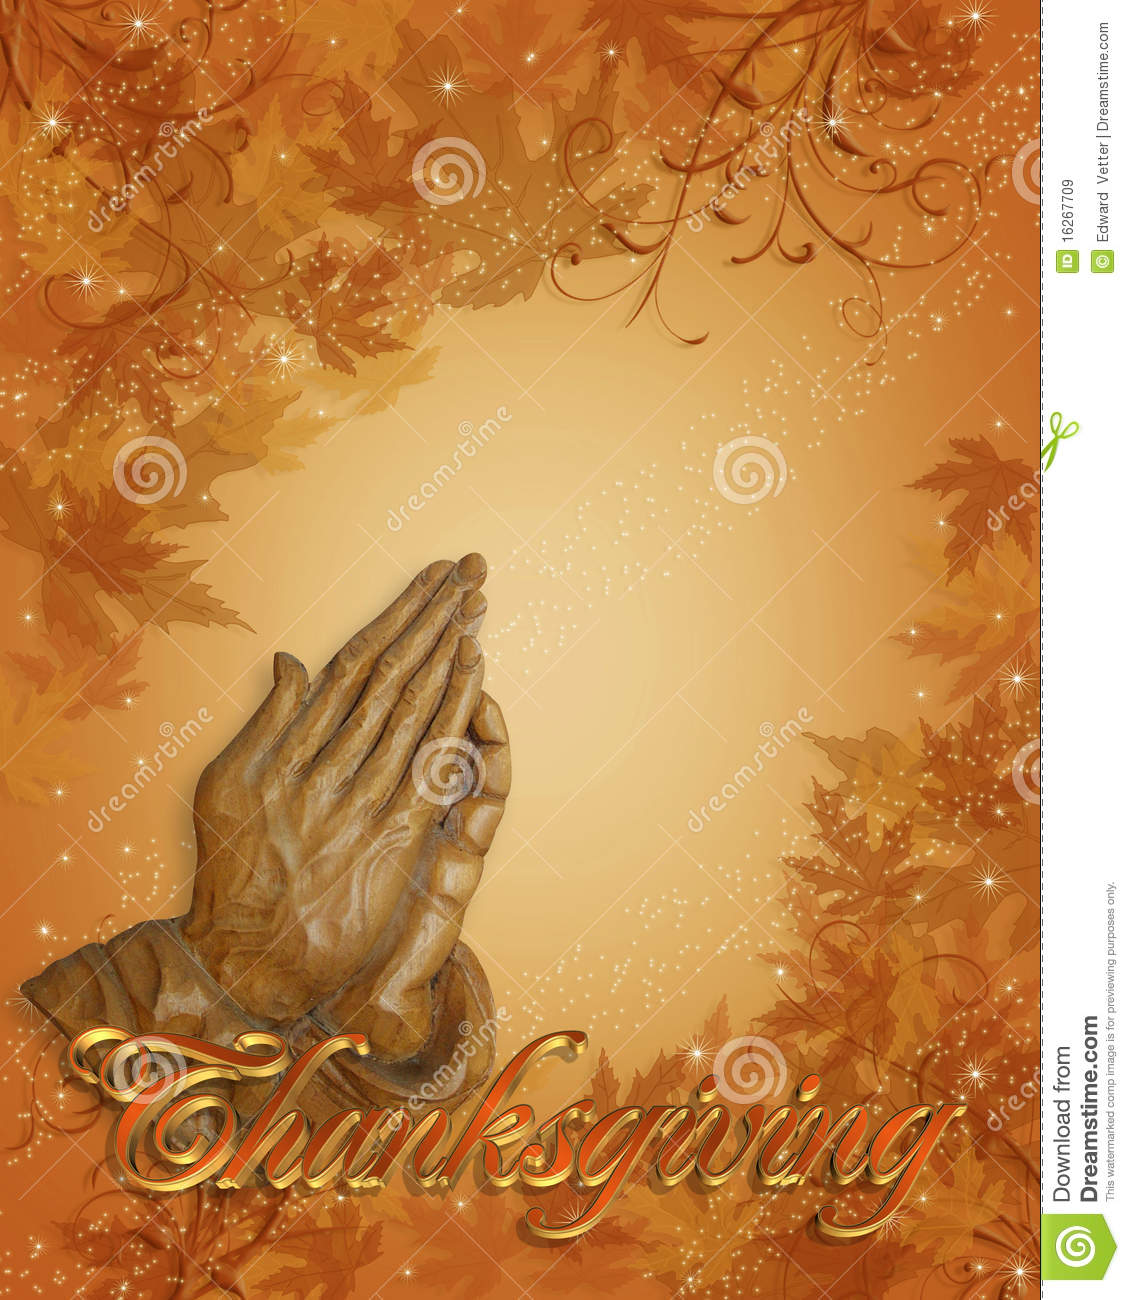 Christian Wallpaper Fall Offering Thanksgiving Praying Hands Royalty Free Stock Images